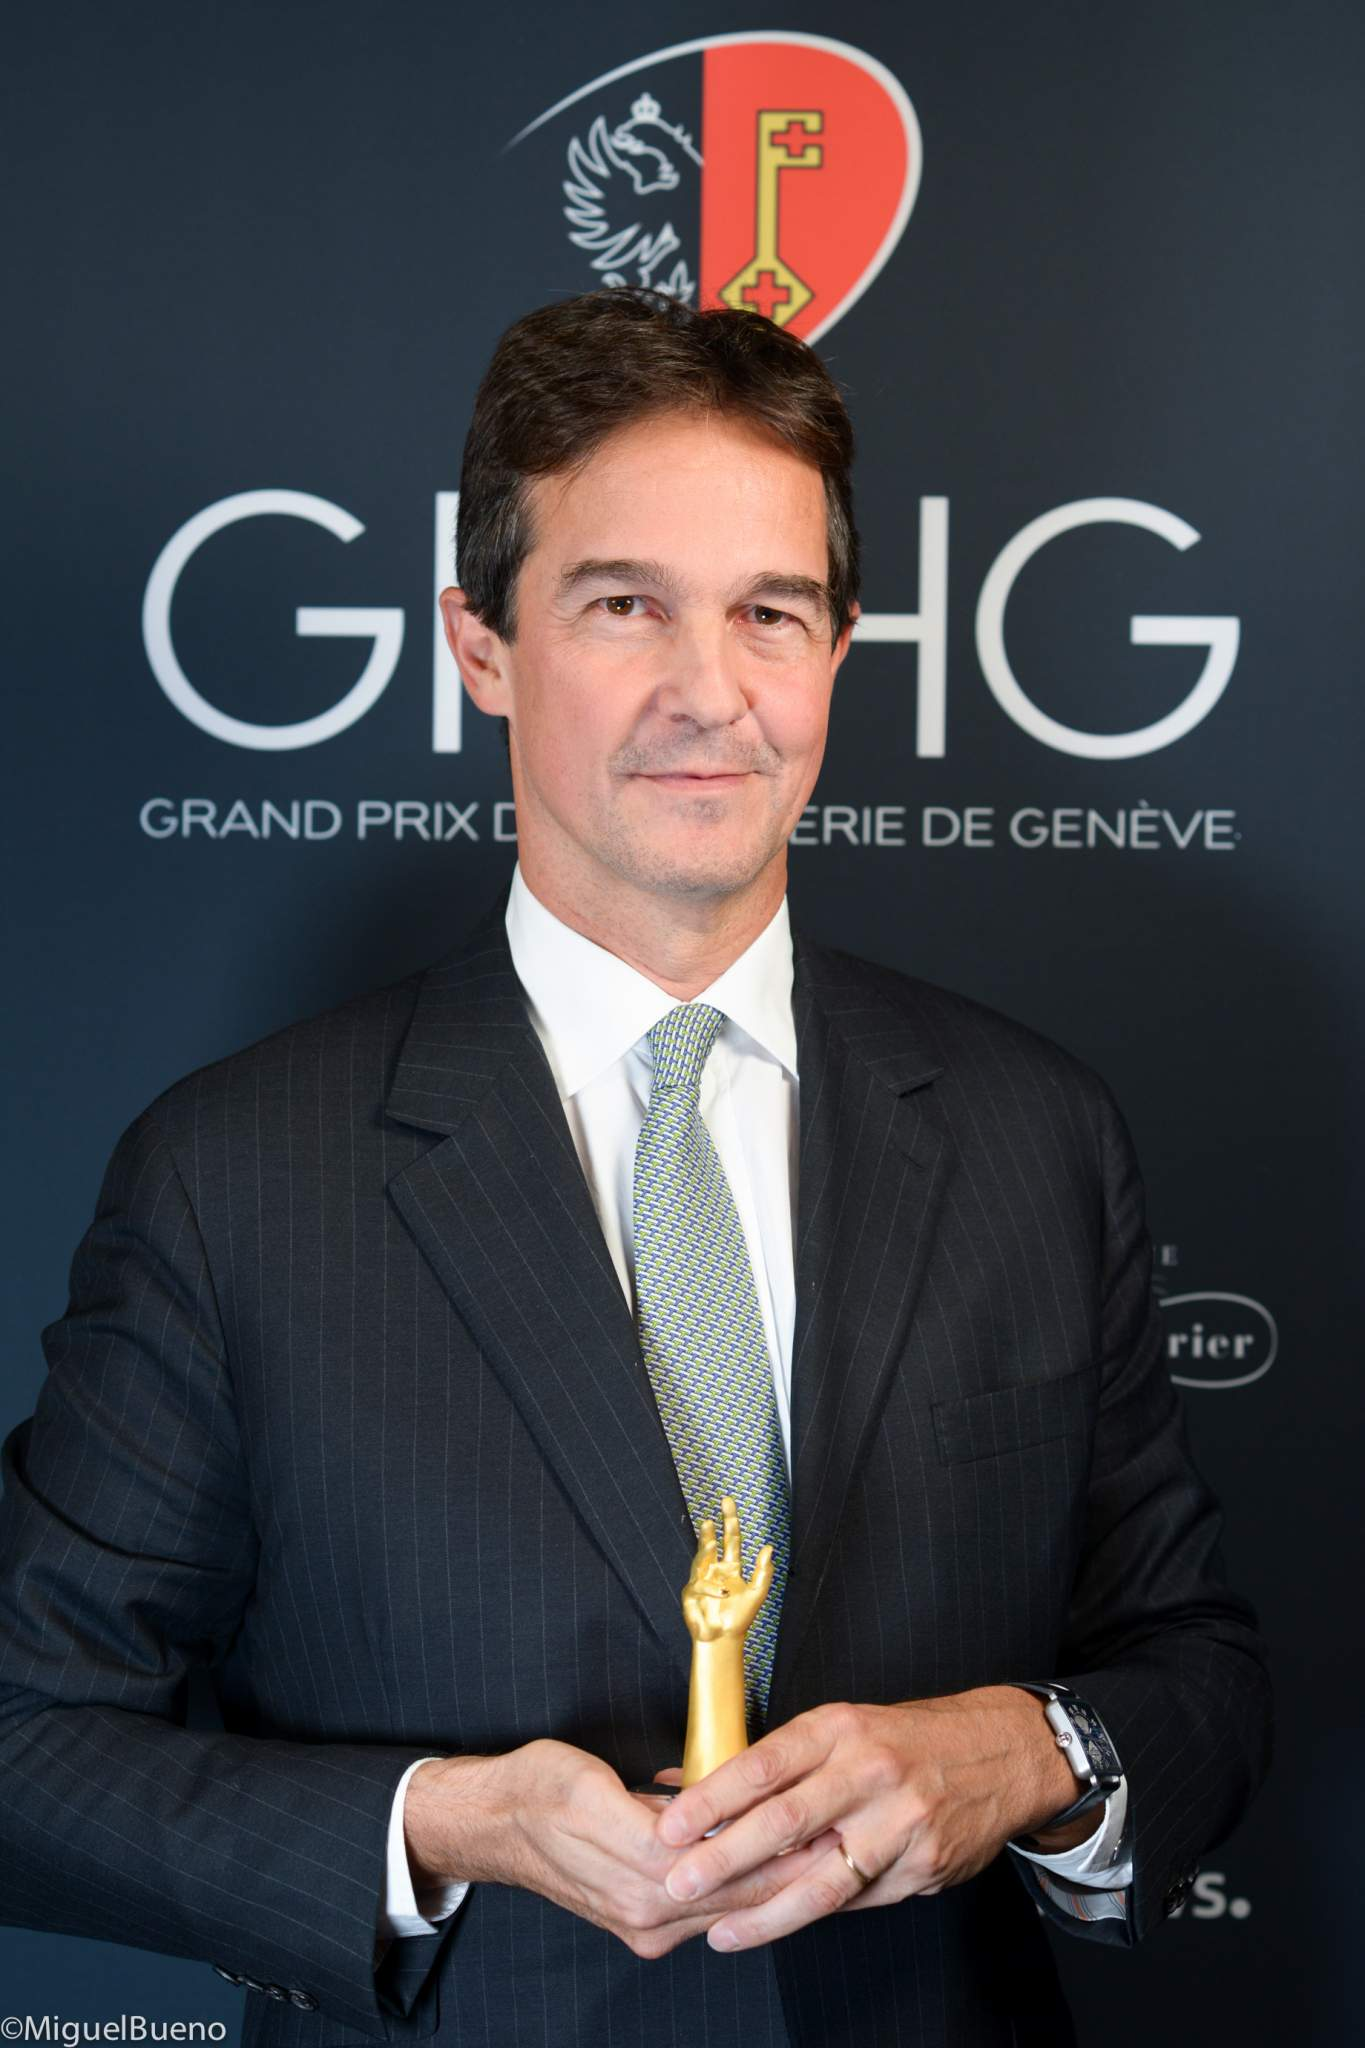 CEO of Hermès Horloger, winner of the Calendar and Astronomy Watch Prize 2019